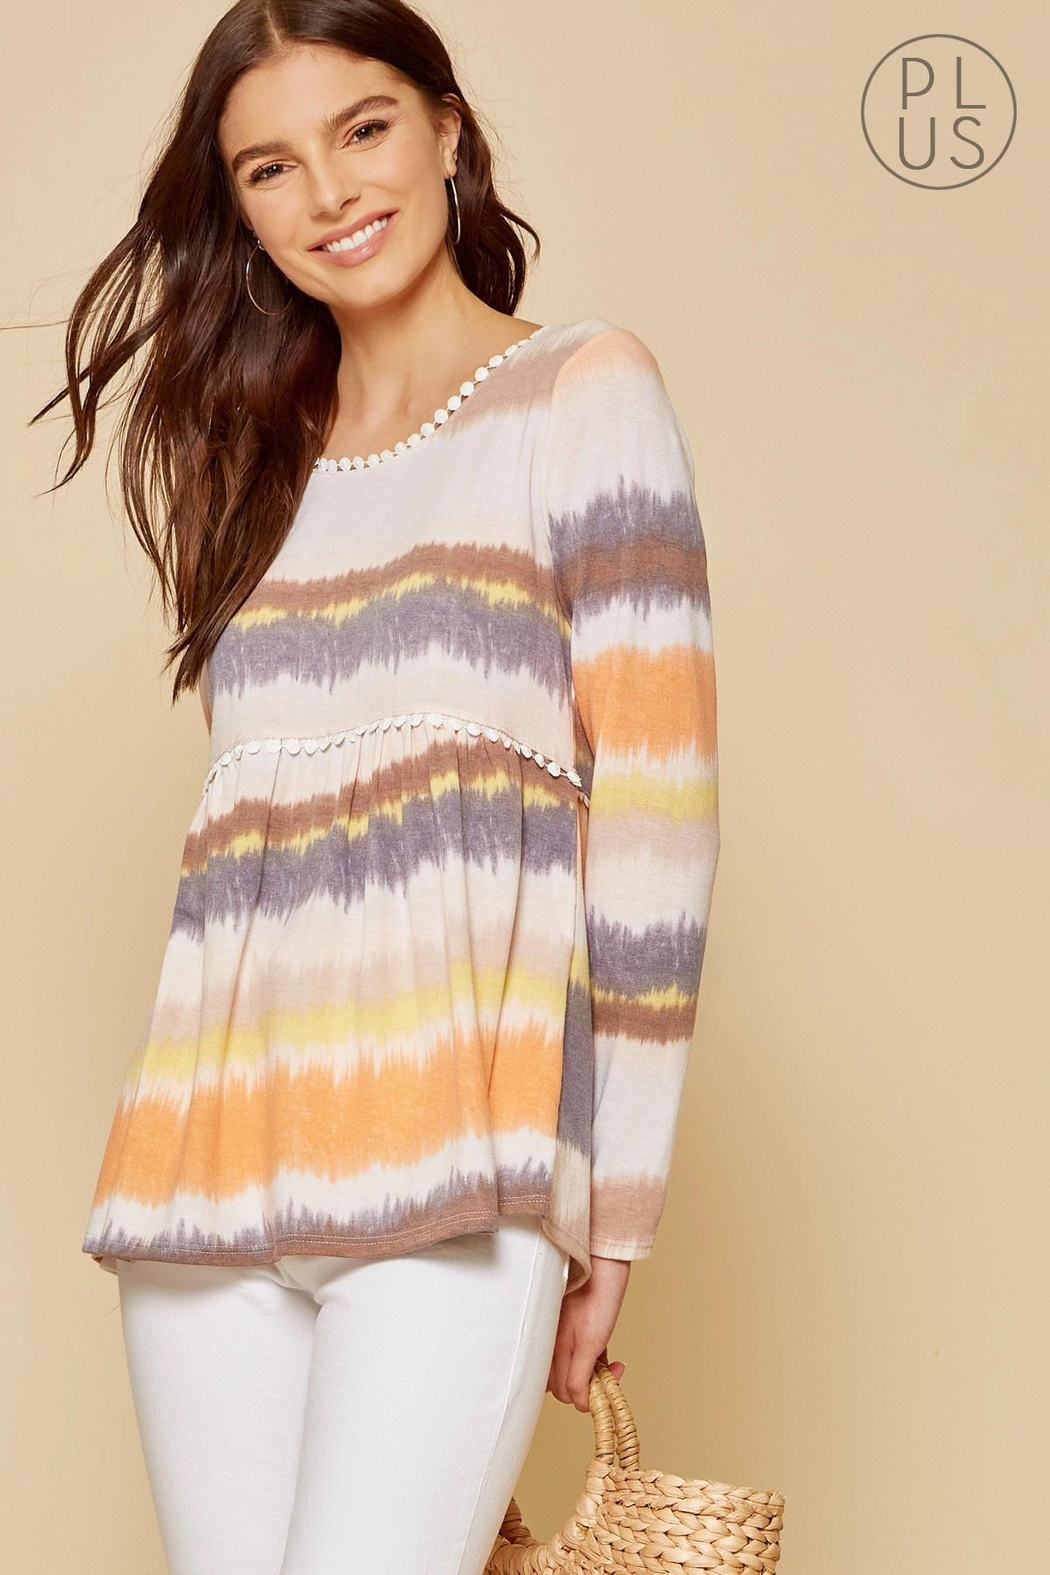 Andree by Unit Tie-Dye Baby-Doll Top - Main Image